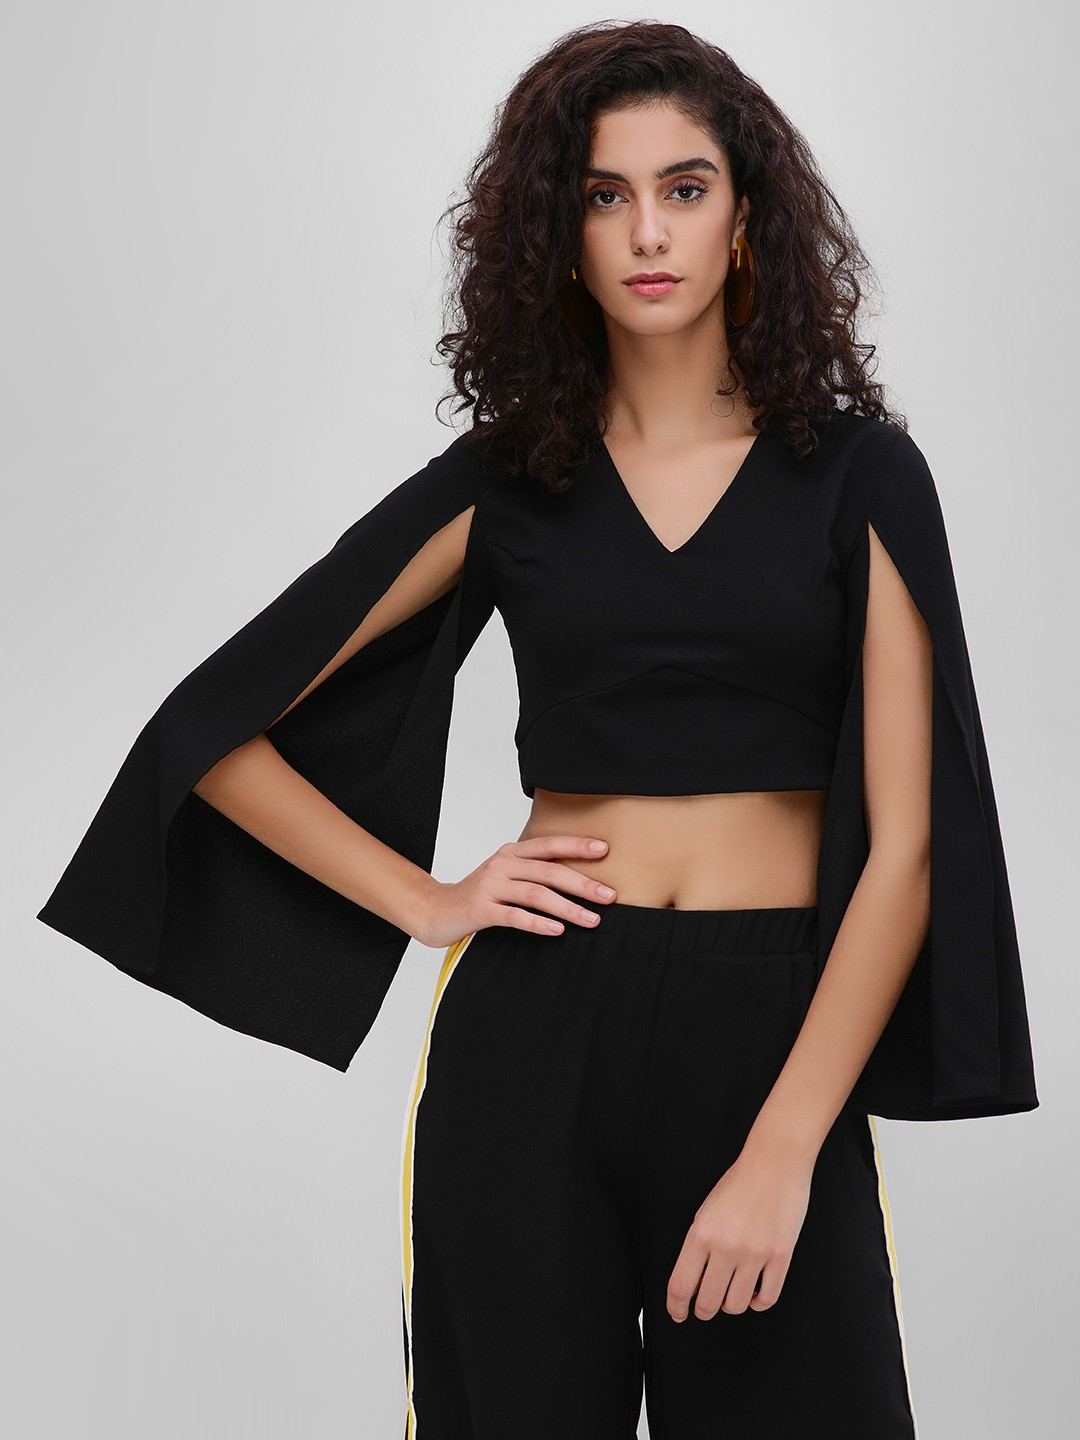 Oliv Black Crop Cape Top With Flared Sleeves 1